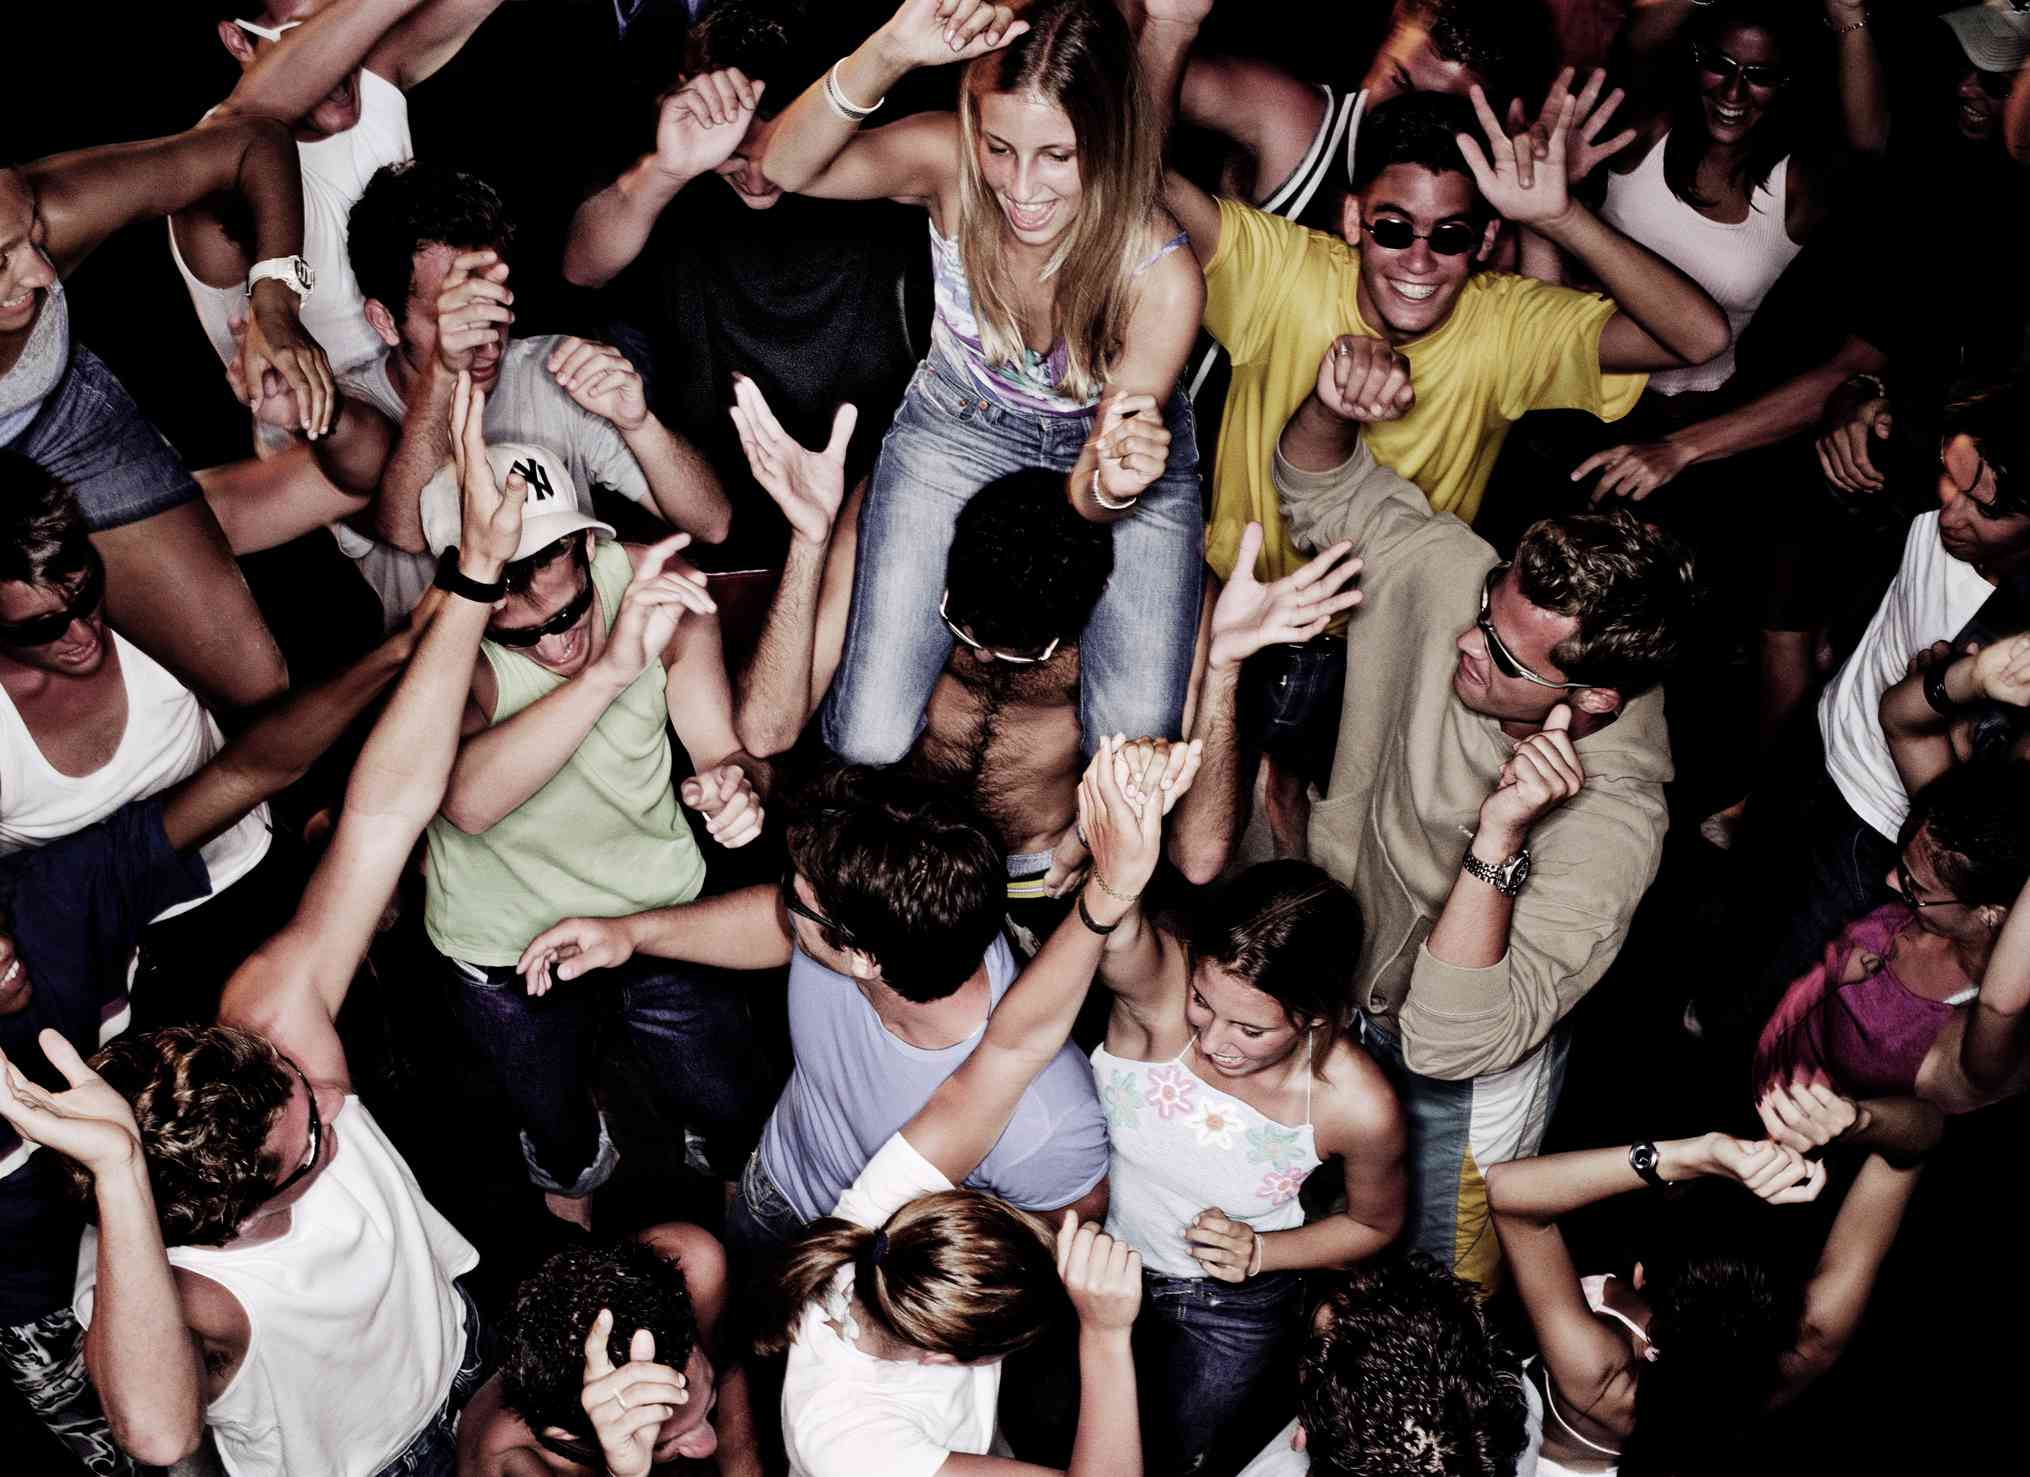 Crowd of people dancing as seen from above